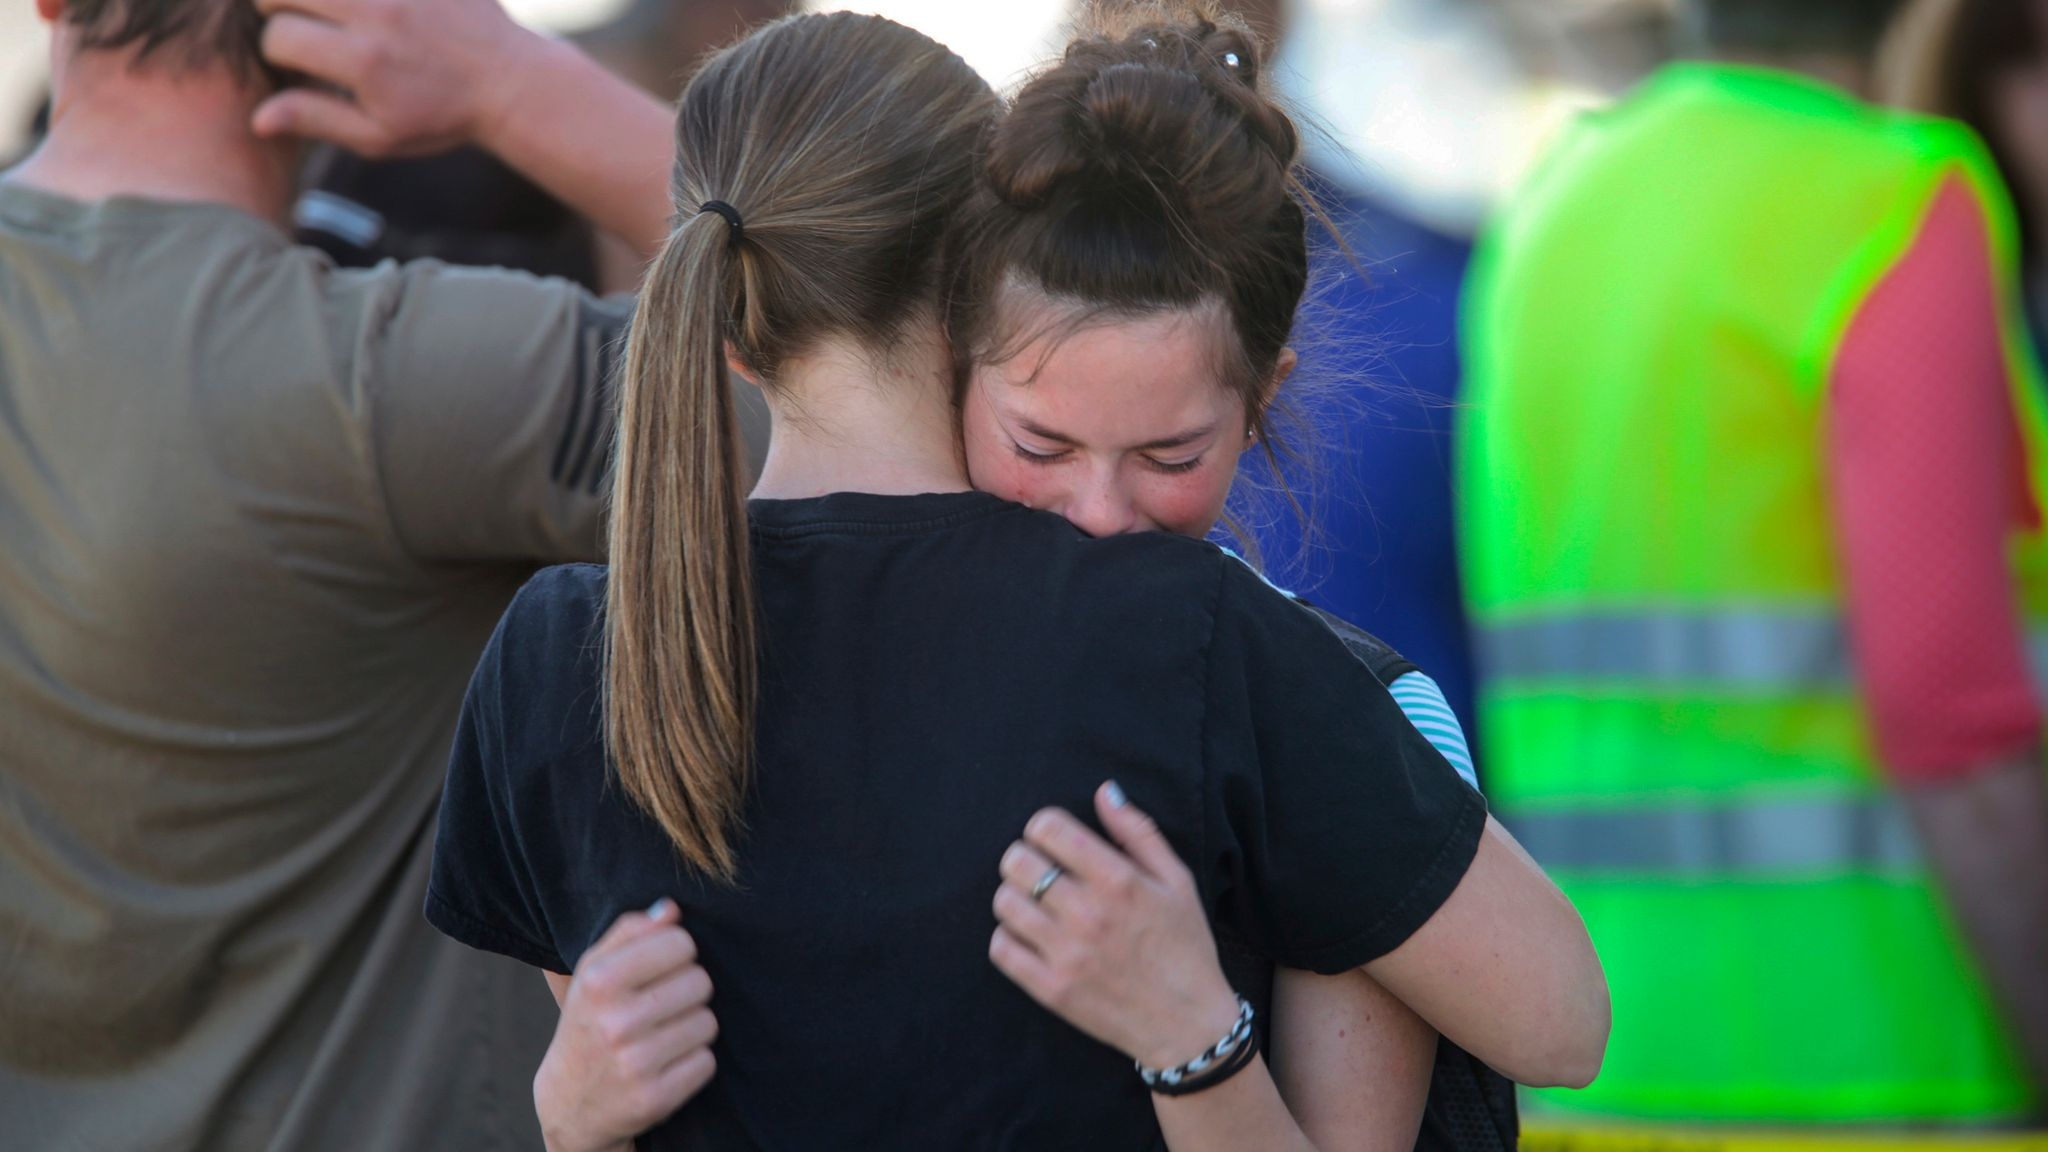 Sixth-Grade Girl Injures Three People After Opening Fire With Handgun